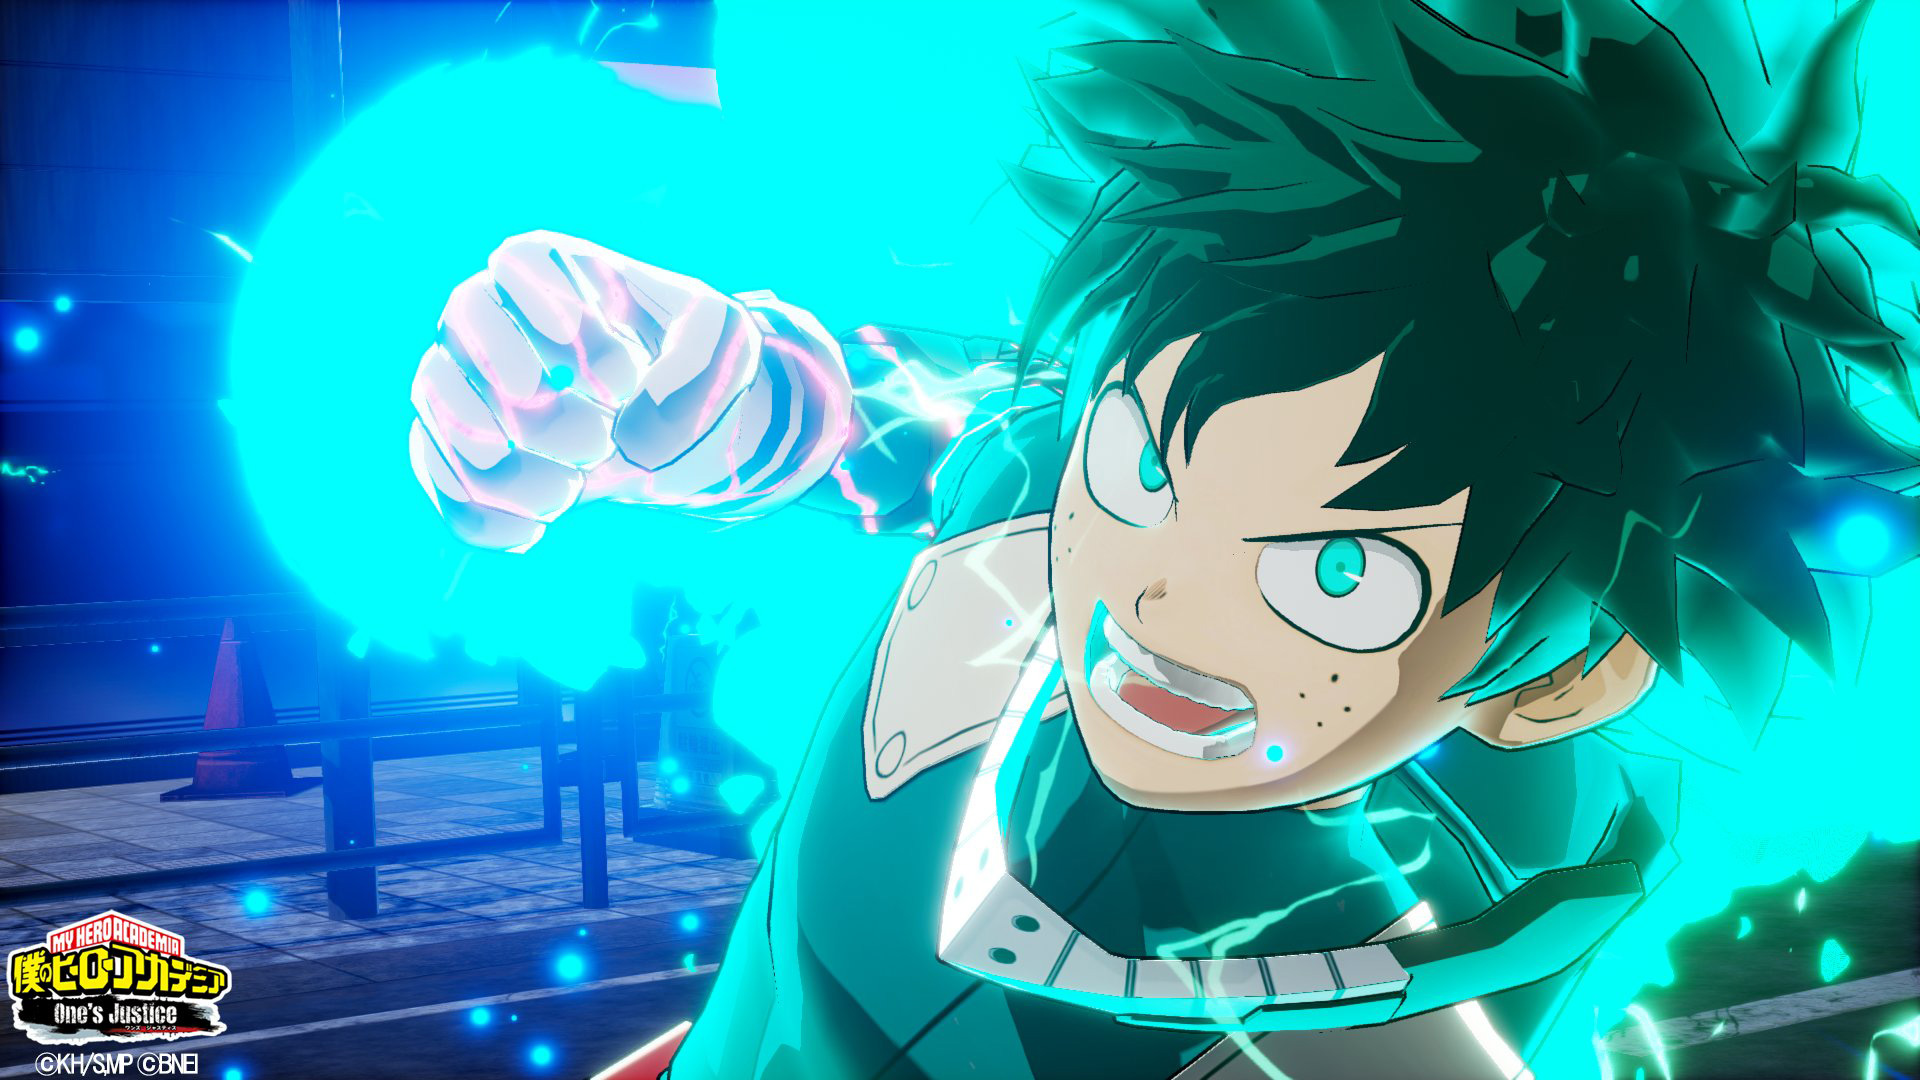 Boku-no-Hero-Academia-Ones-Justice-Screenshot-04